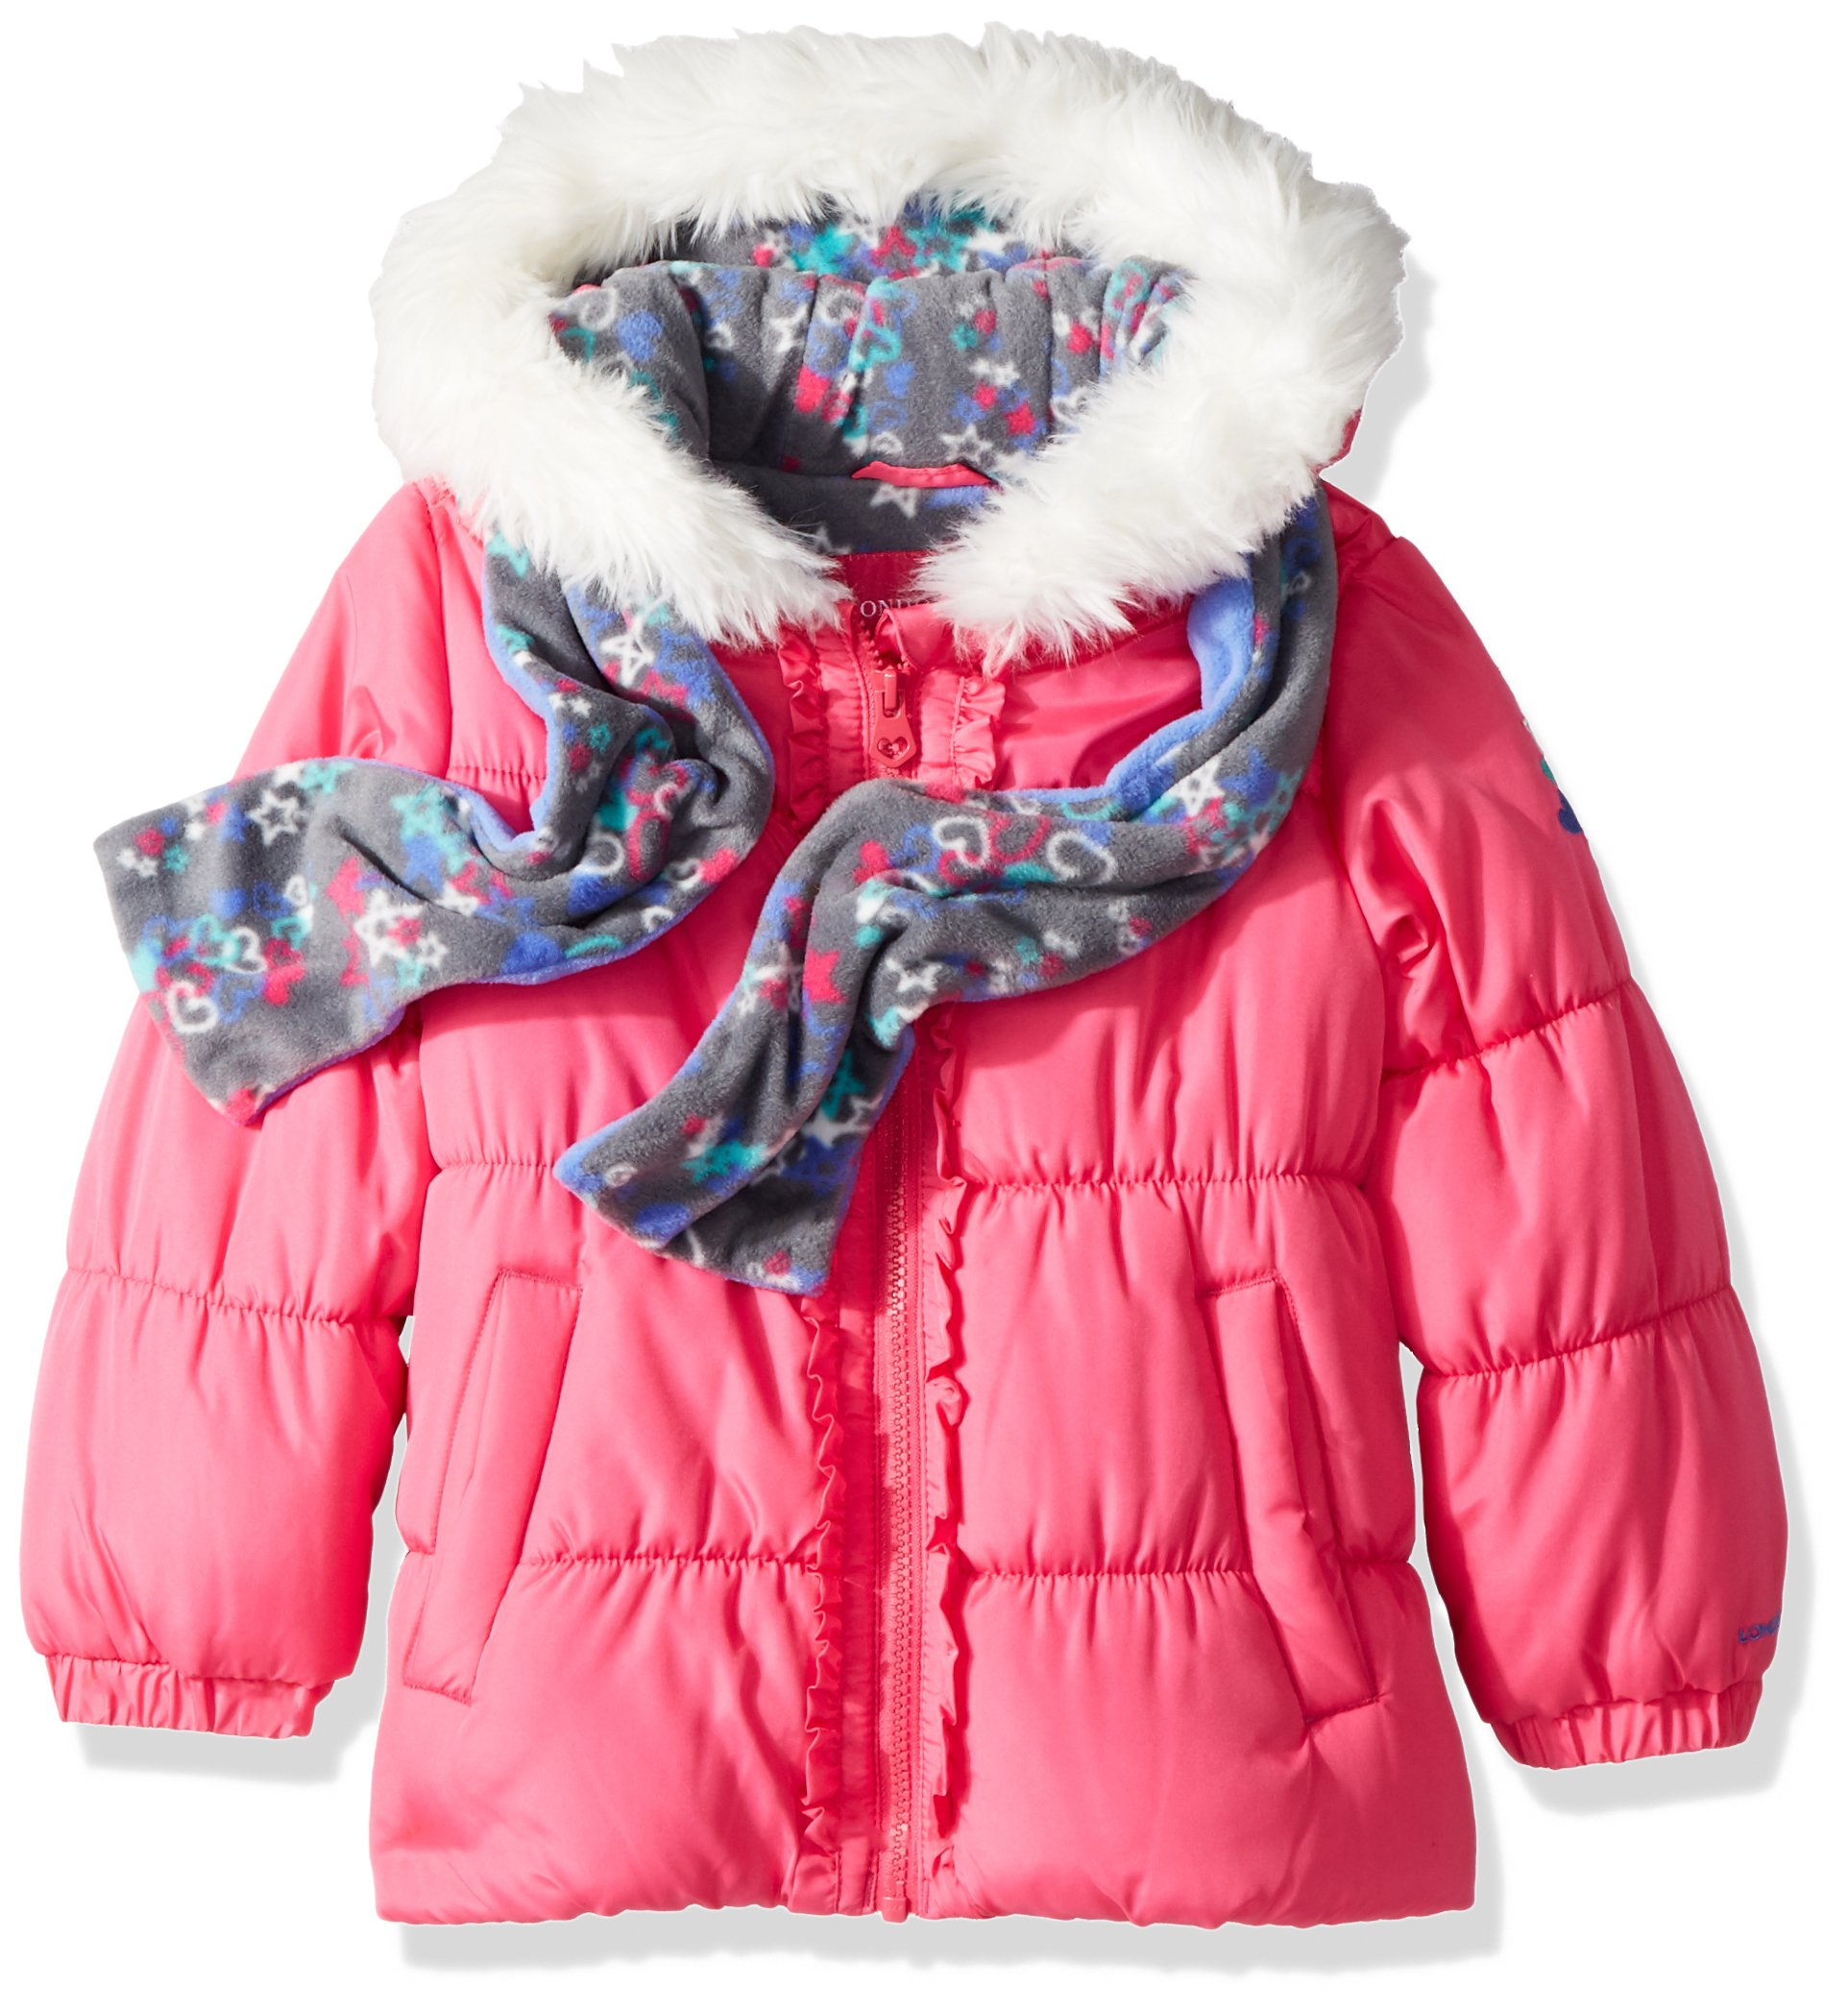 London Fog Little Girls' Winter Coat with Hat and Scarf, Poppy Shock/Grey Scarf, 5/6